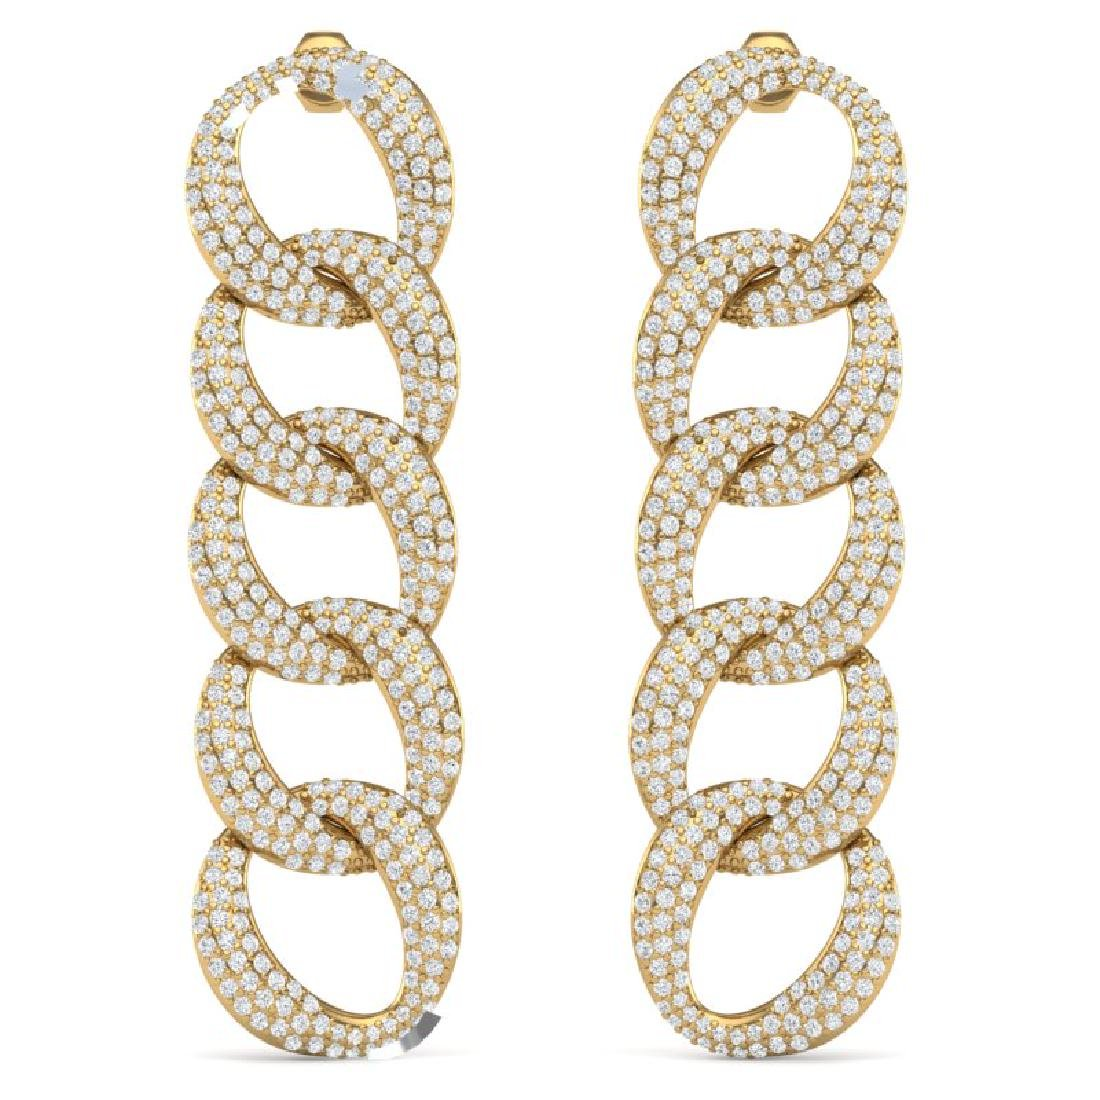 5 CTW Certified VS/SI Diamond Earrings 18K Yellow Gold - 3